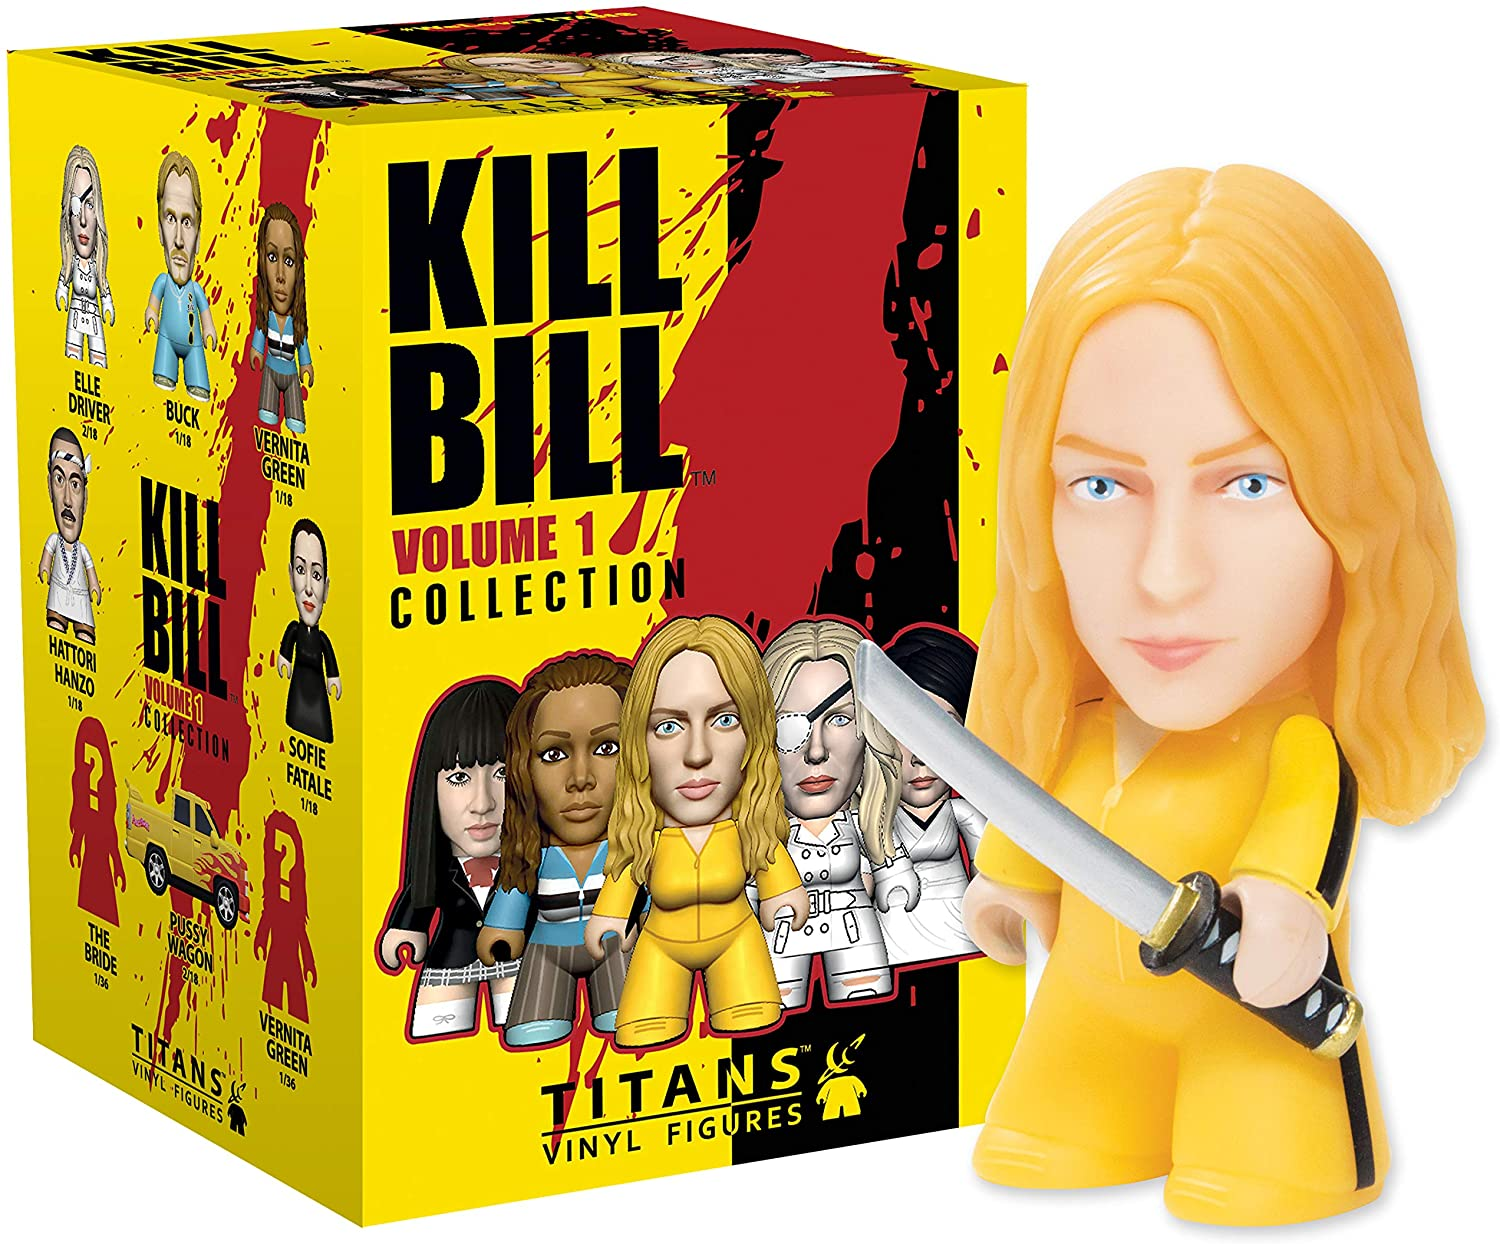 KILL BILL VOL 1 COLLECTION TITANS VINYL FIGURE (BLIND BOX COLLECTIBLE) TITAN